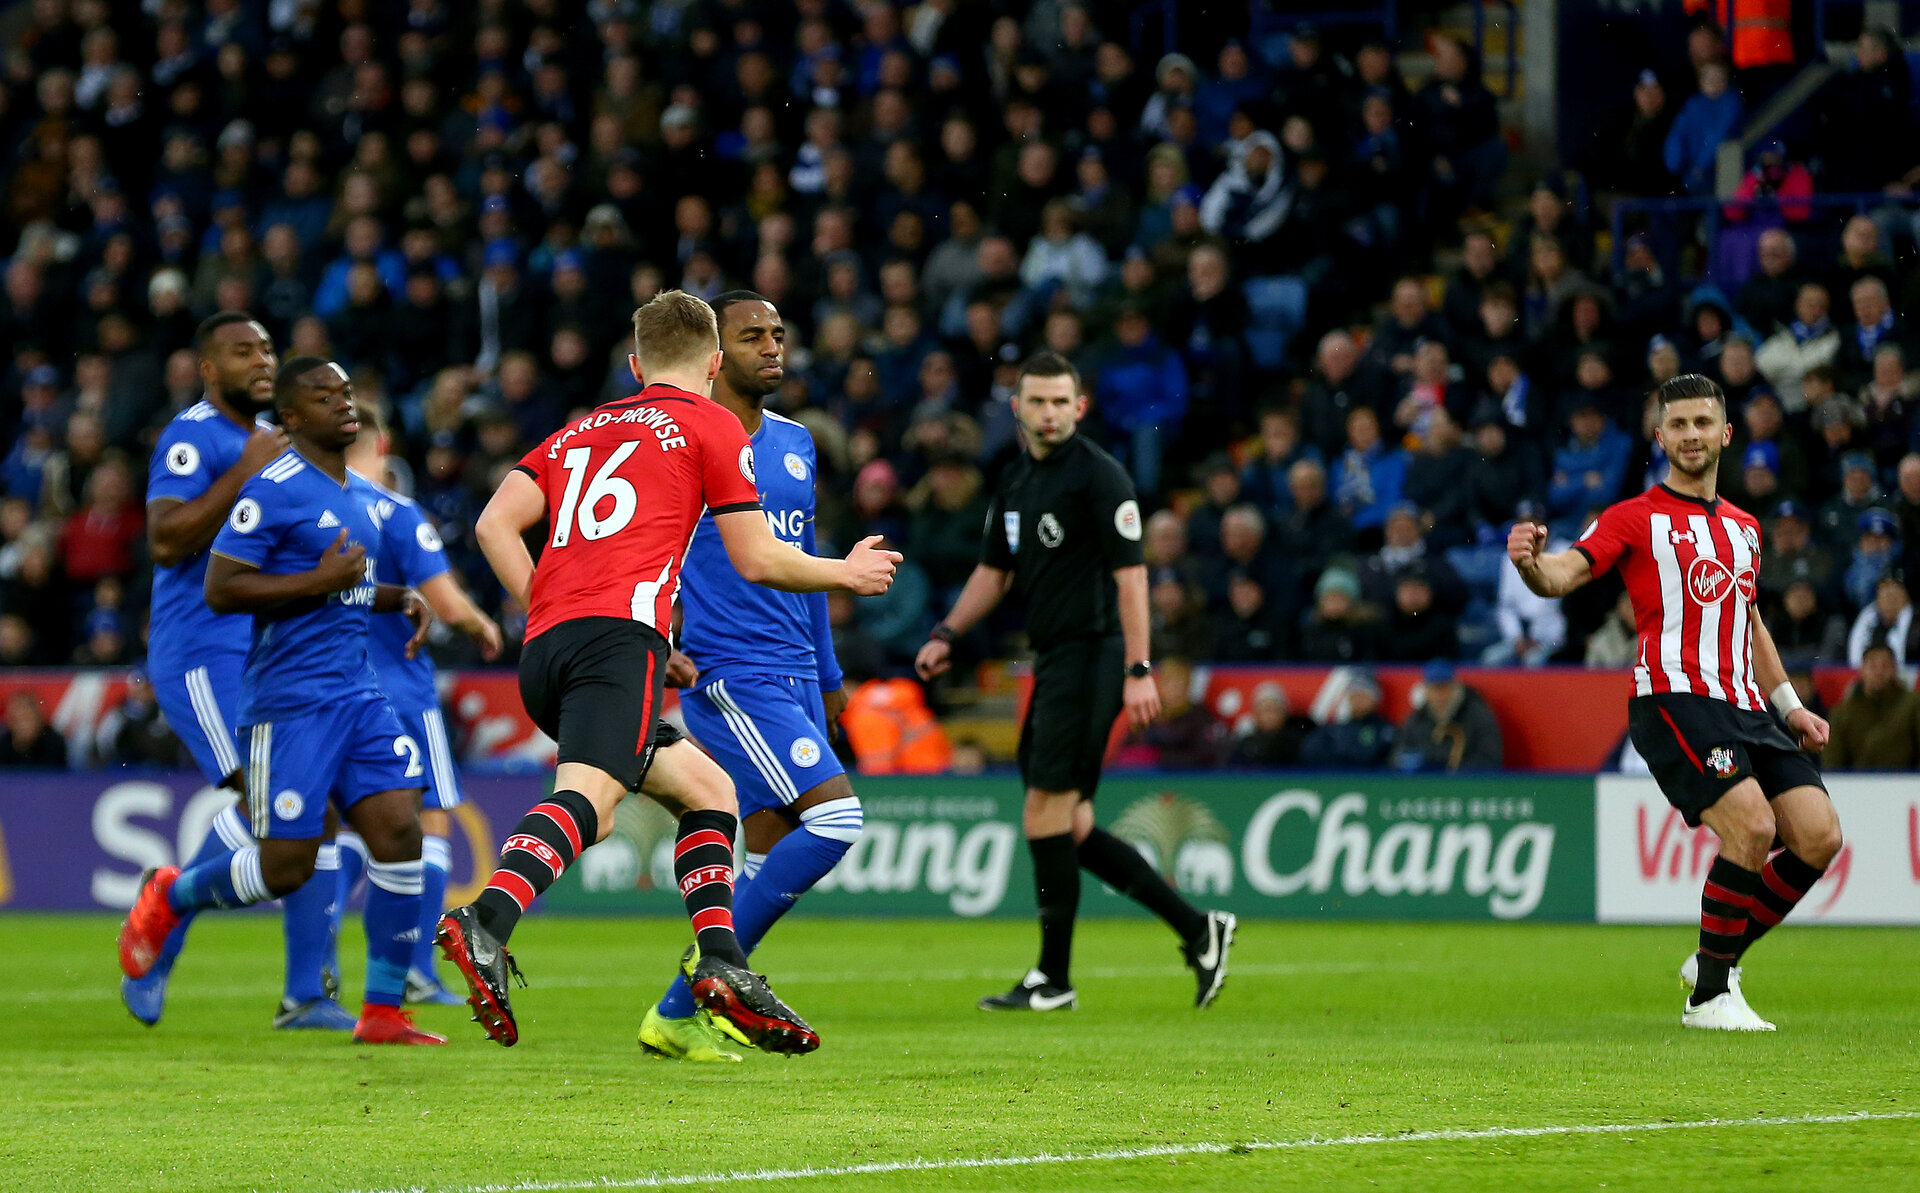 LEICESTER, ENGLAND - JANUARY 12: James Ward-Prowse of Southampton celebrates after converting from the penalty spot  during the Premier League match between Leicester City and Southampton FC at The King Power Stadium on January 12, 2019 in Leicester, United Kingdom. (Photo by Matt Watson/Southampton FC via Getty Images)